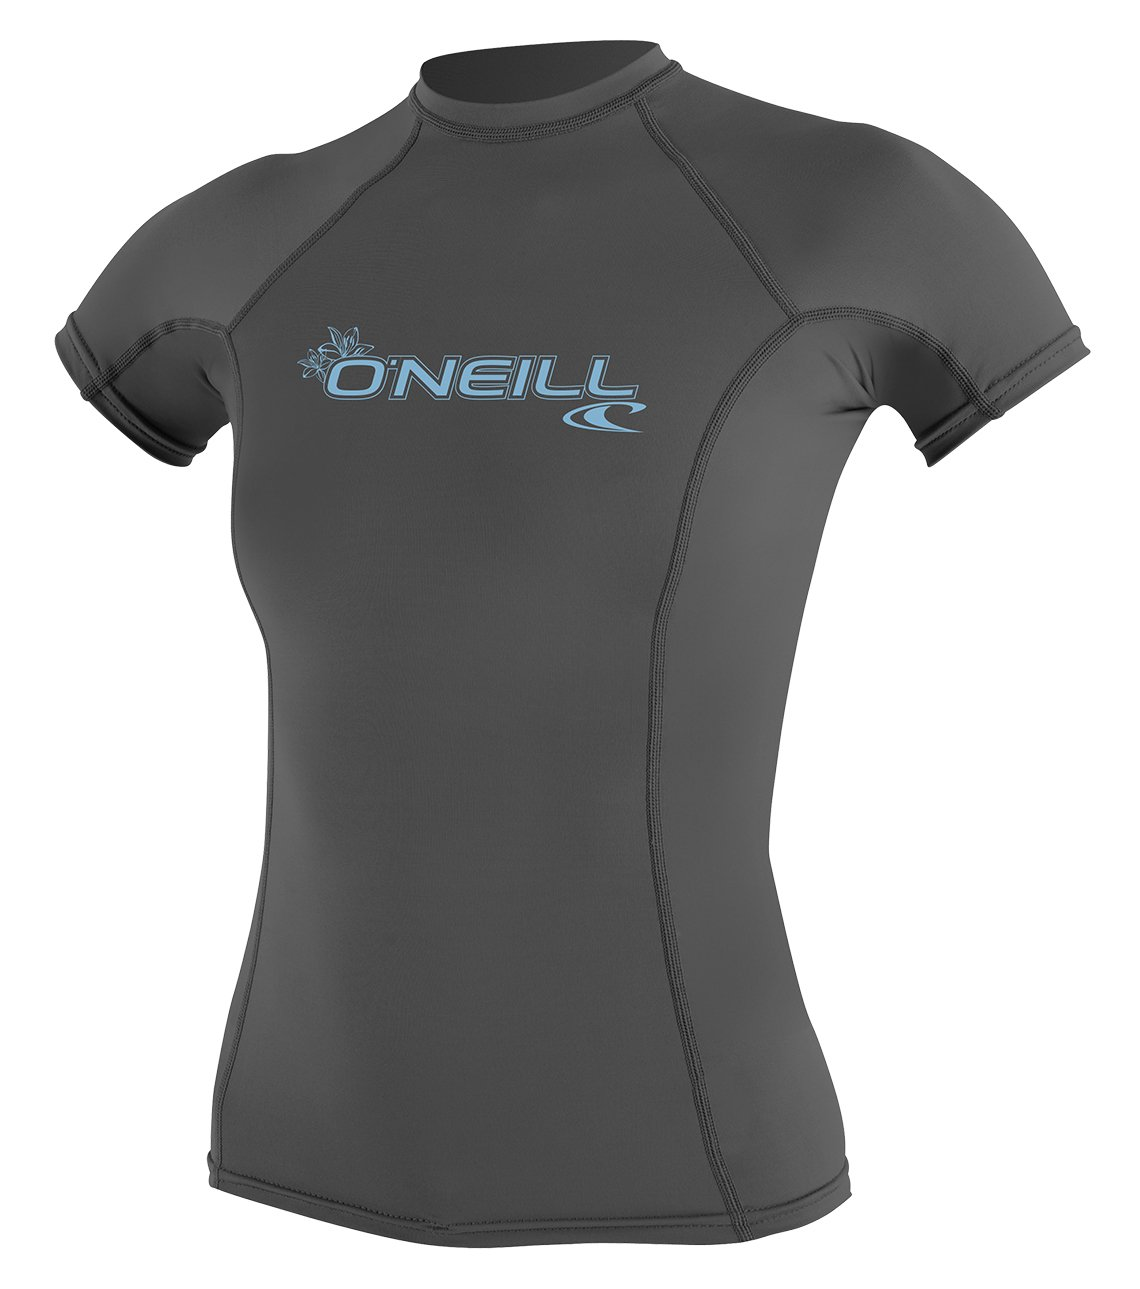 O'Neill Women's Basic 50+ Skins Short Sleeve Rash Guard, Graphite, Small by O'Neill Wetsuits